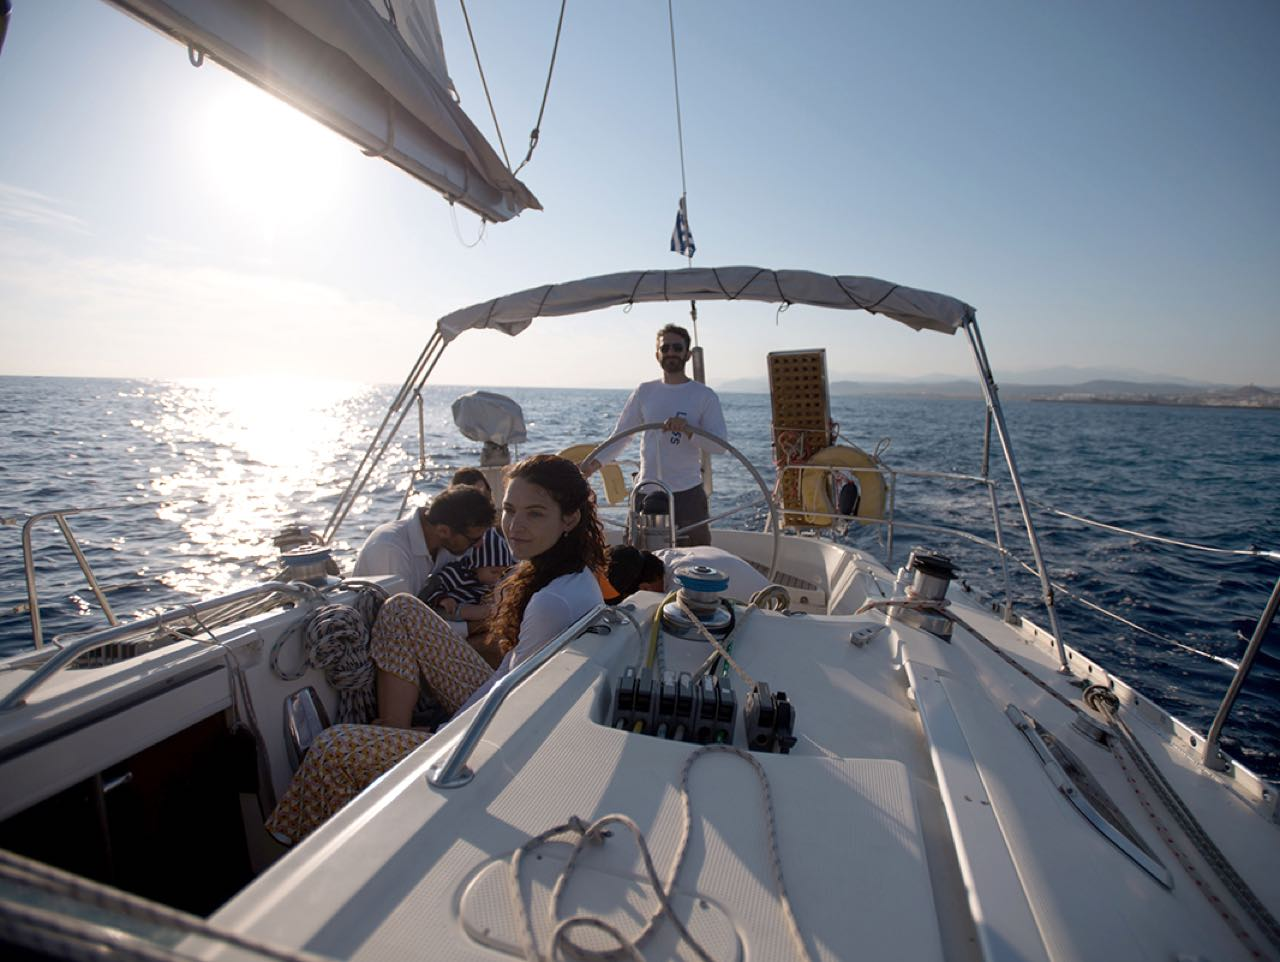 Culinary Experience, Day Sailing In Crete, sailing cruises heraklion Crete, best sailing trips heraklion crete, cooking and sailing crete, crete sailing tours acivities, things to do in heraklion, activities heraklion crete